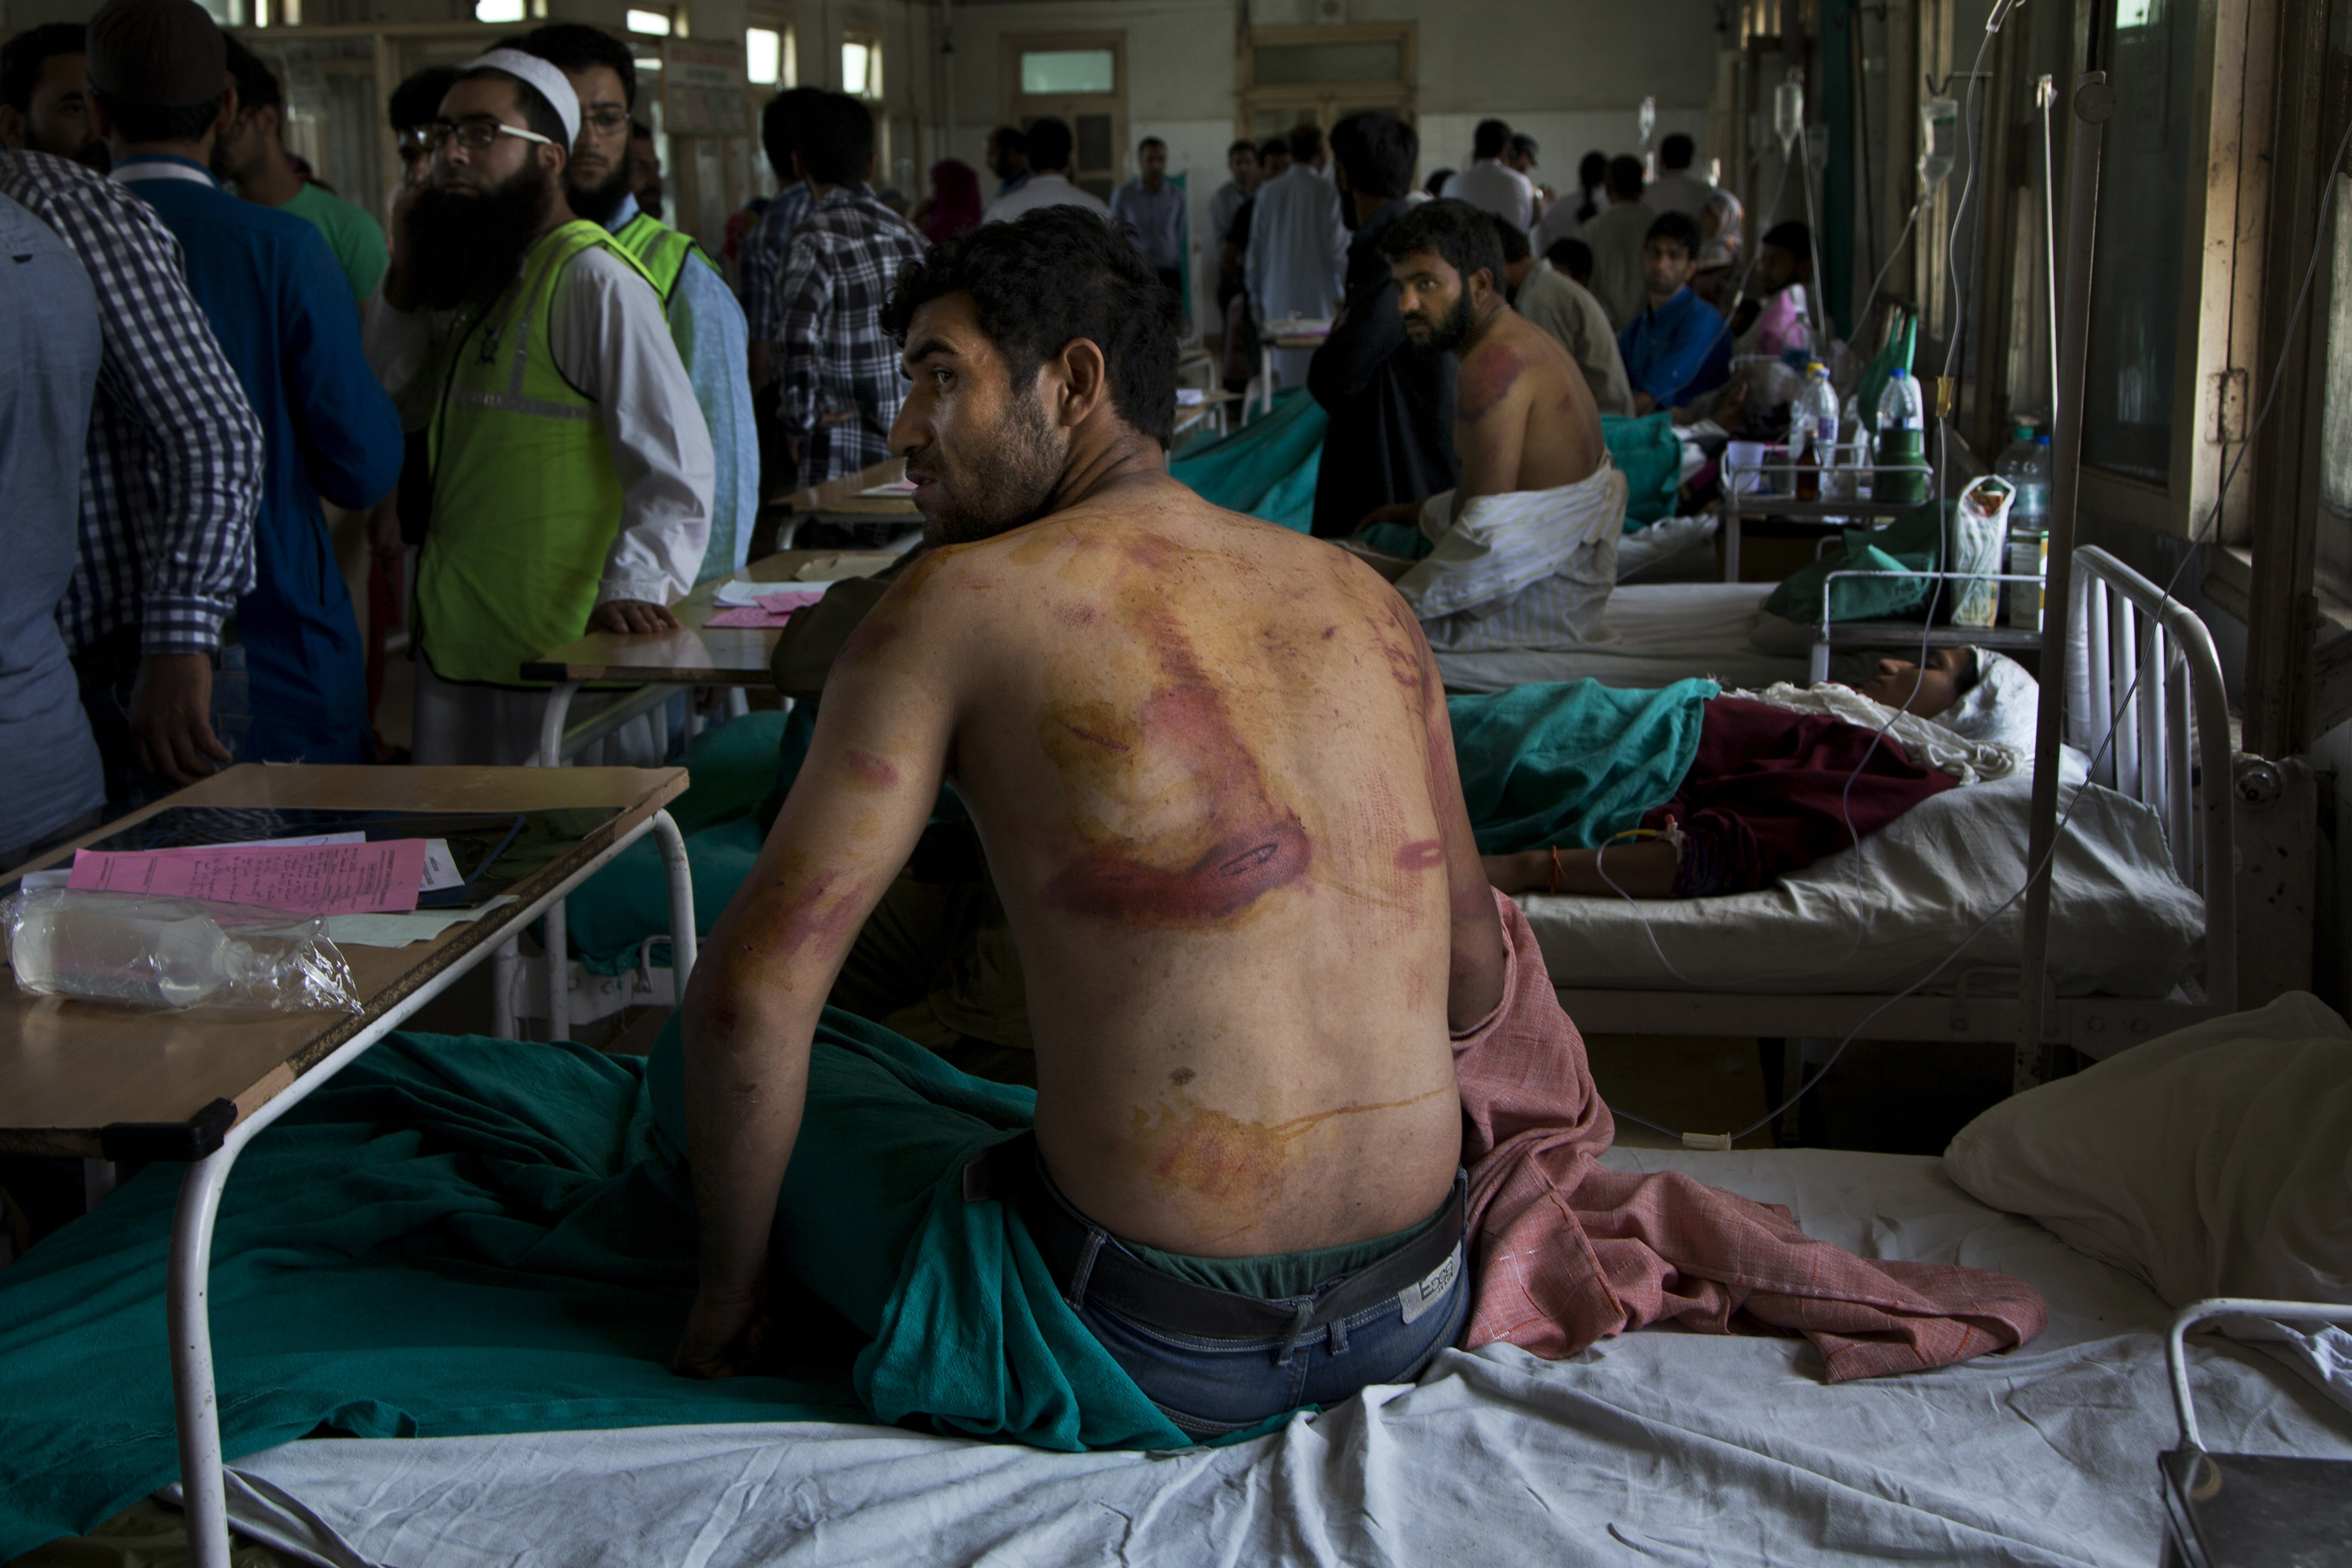 In this Aug. 18, 2016 file photo, Sameer Ahmed, a Kashmiri man allegedly beaten up by Indian soldiers at Khrew village, recovers at a local hospital in Srinagar, Indian controlled Kashmir.